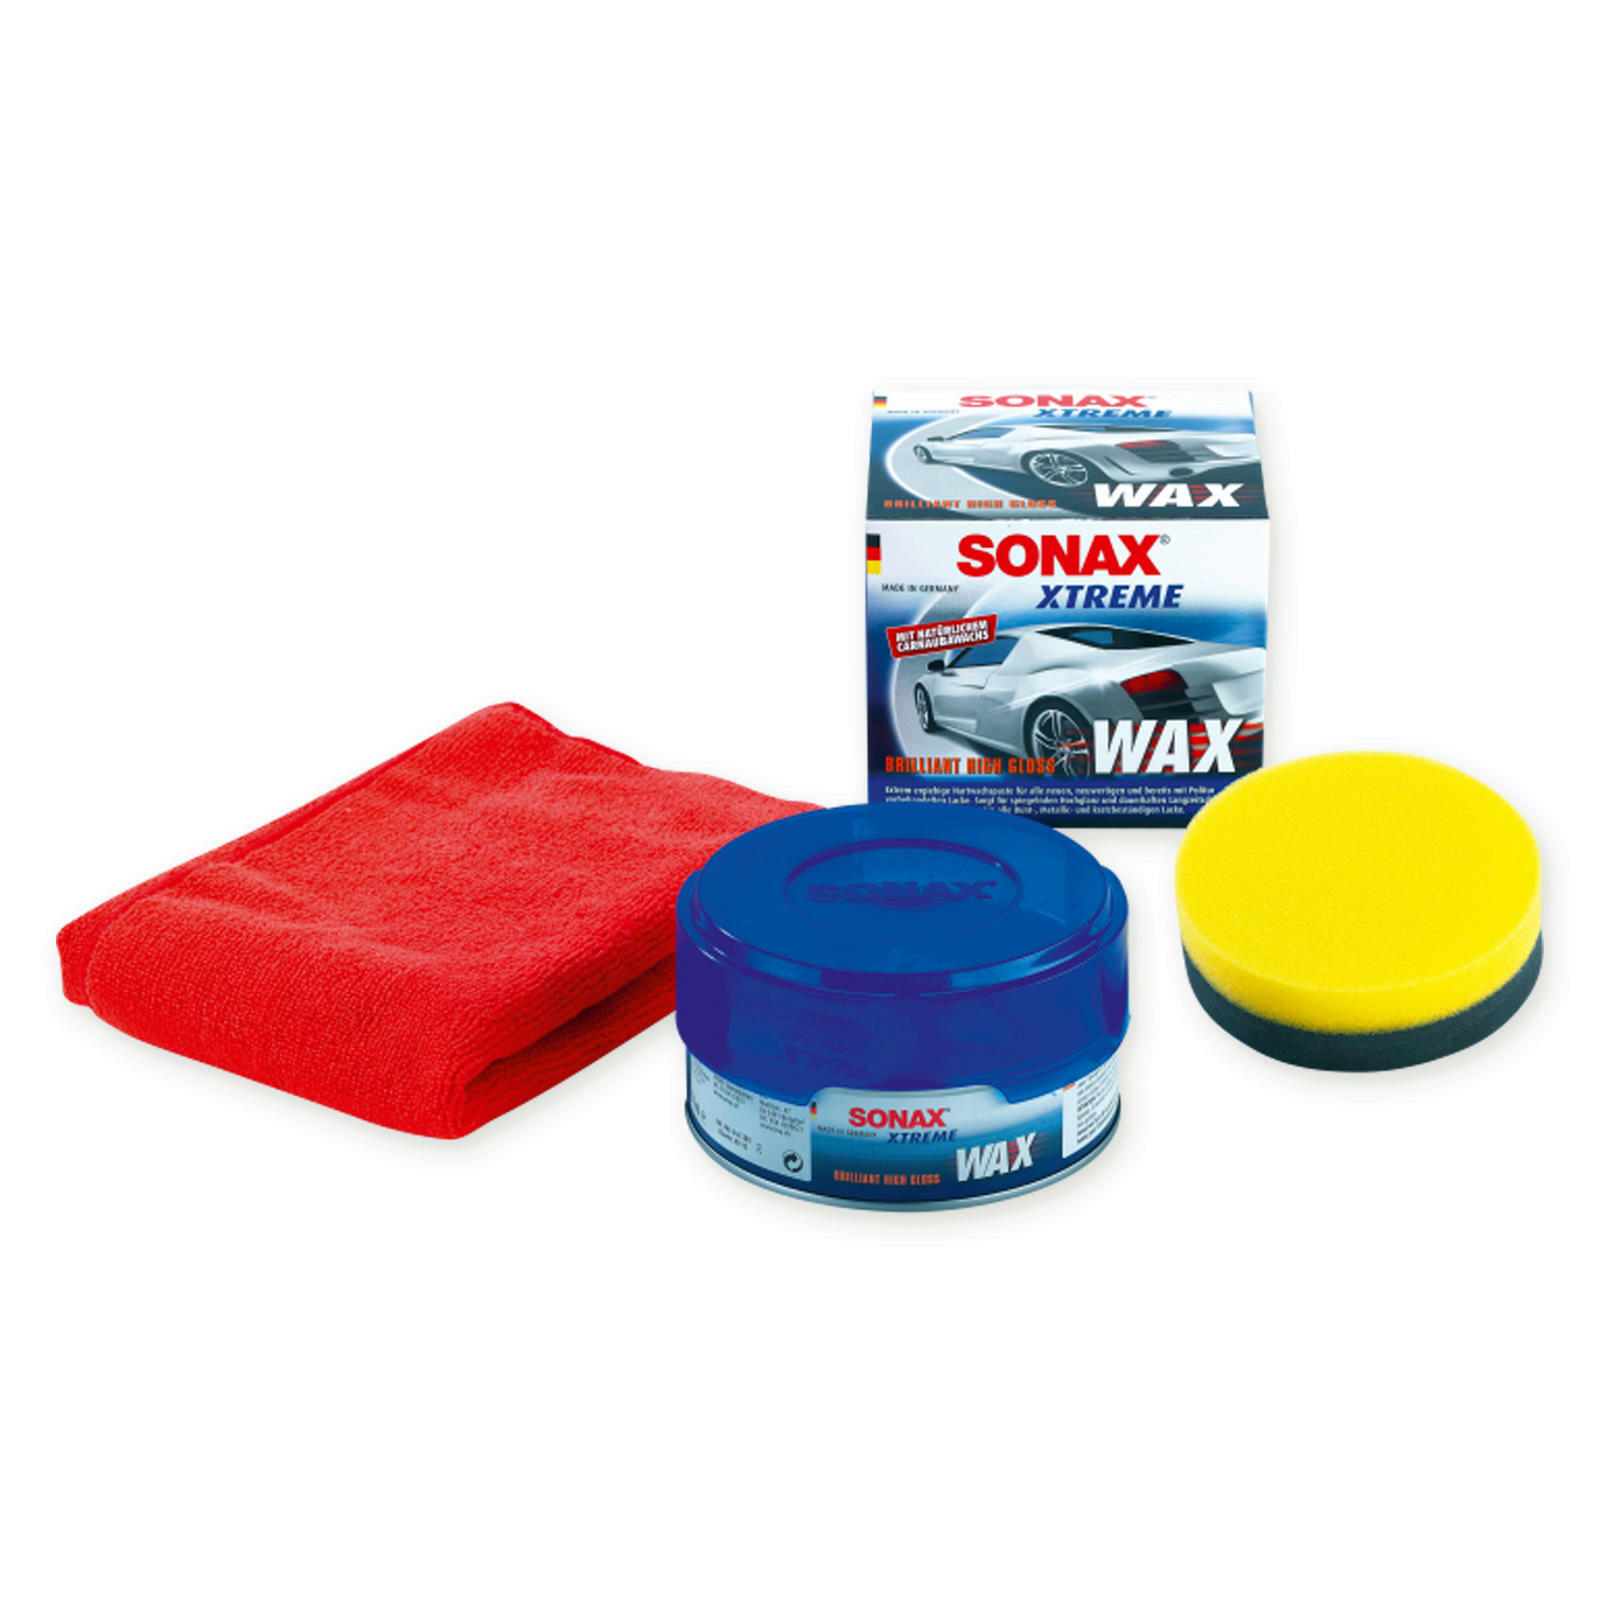 SONAX XTREME Wax 150ML